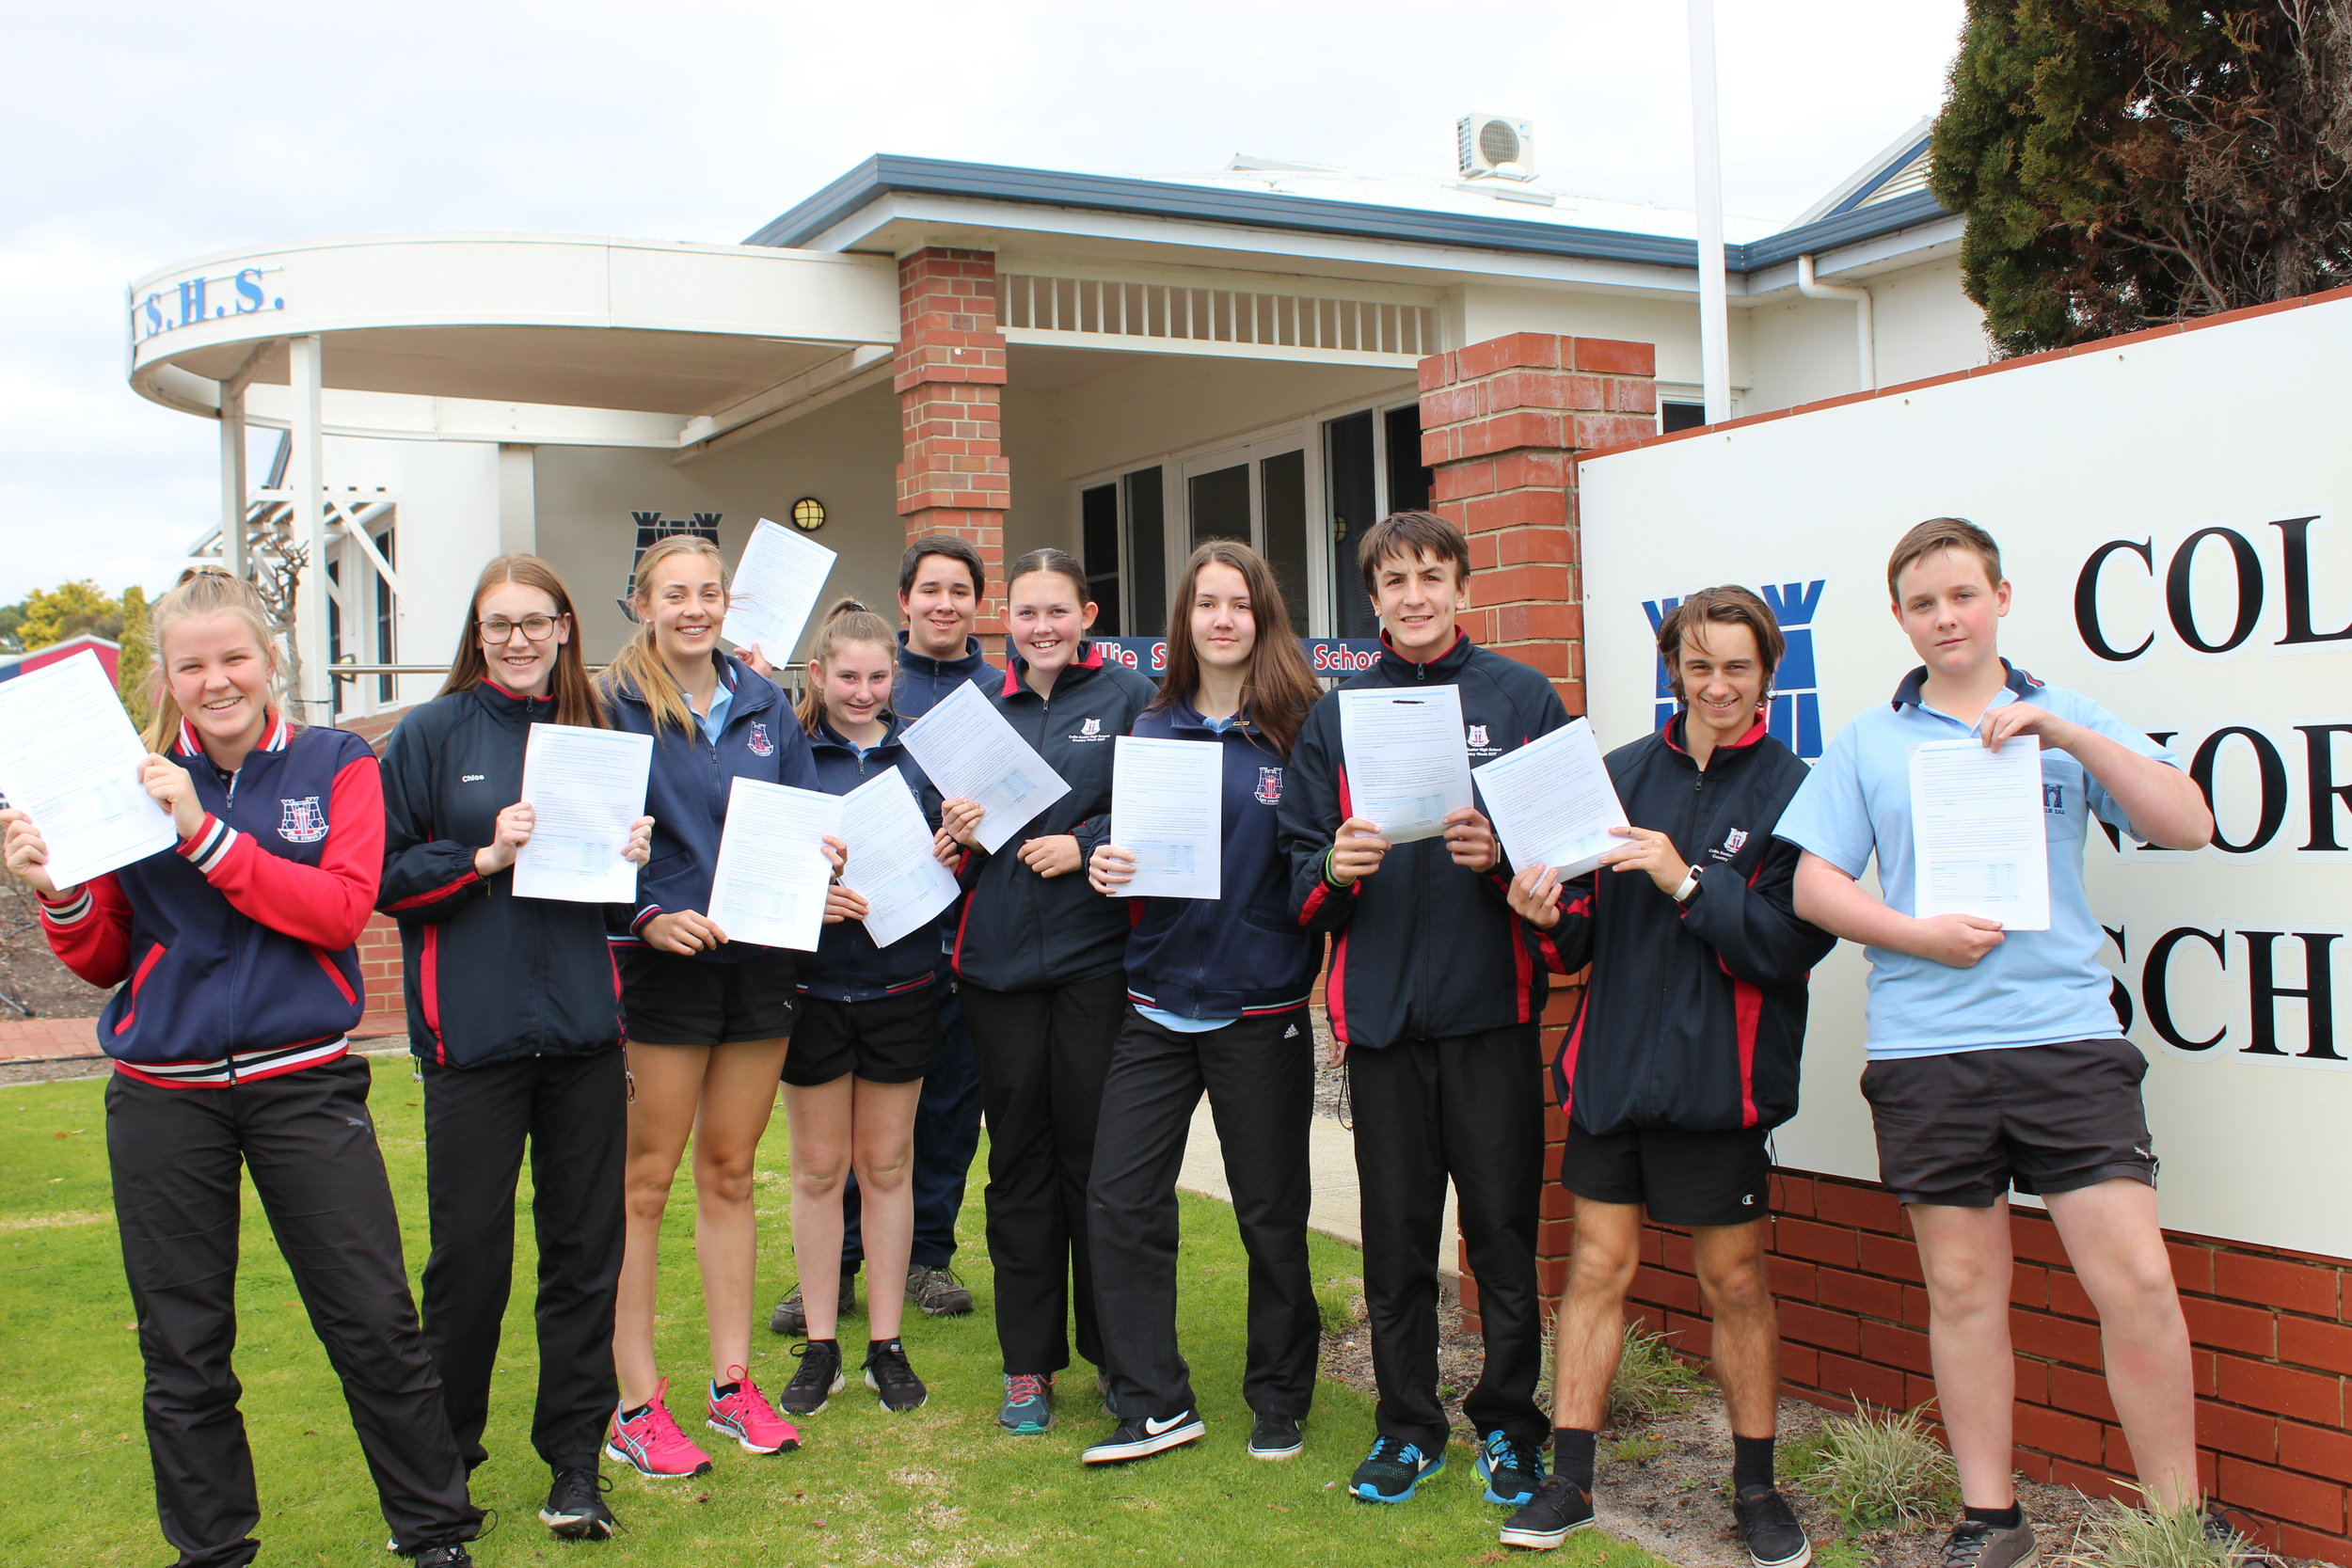 school council representatives at collie senior high school have released the findings of a youth survey.